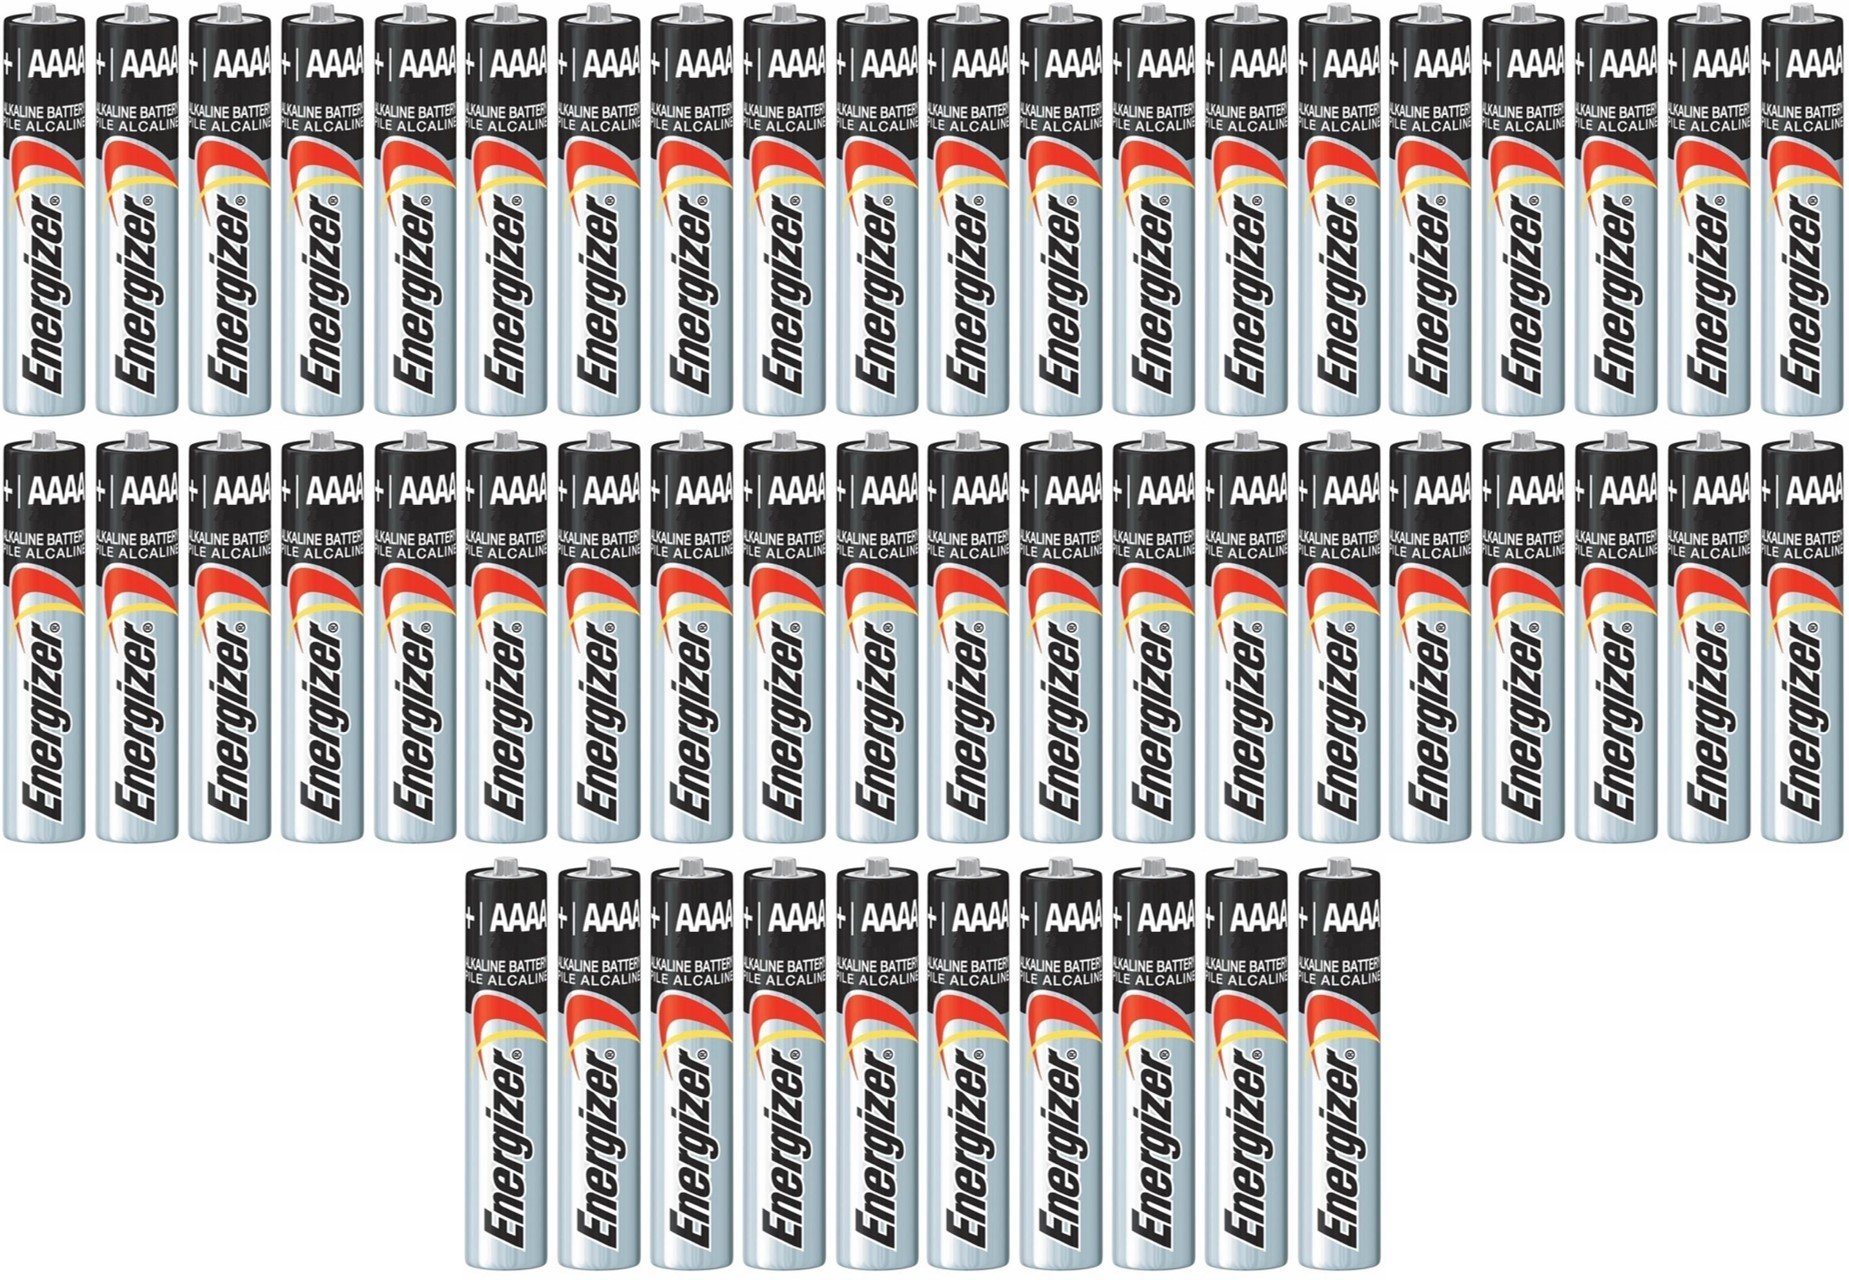 6400 Energizer AAAA Batteries by Energizer